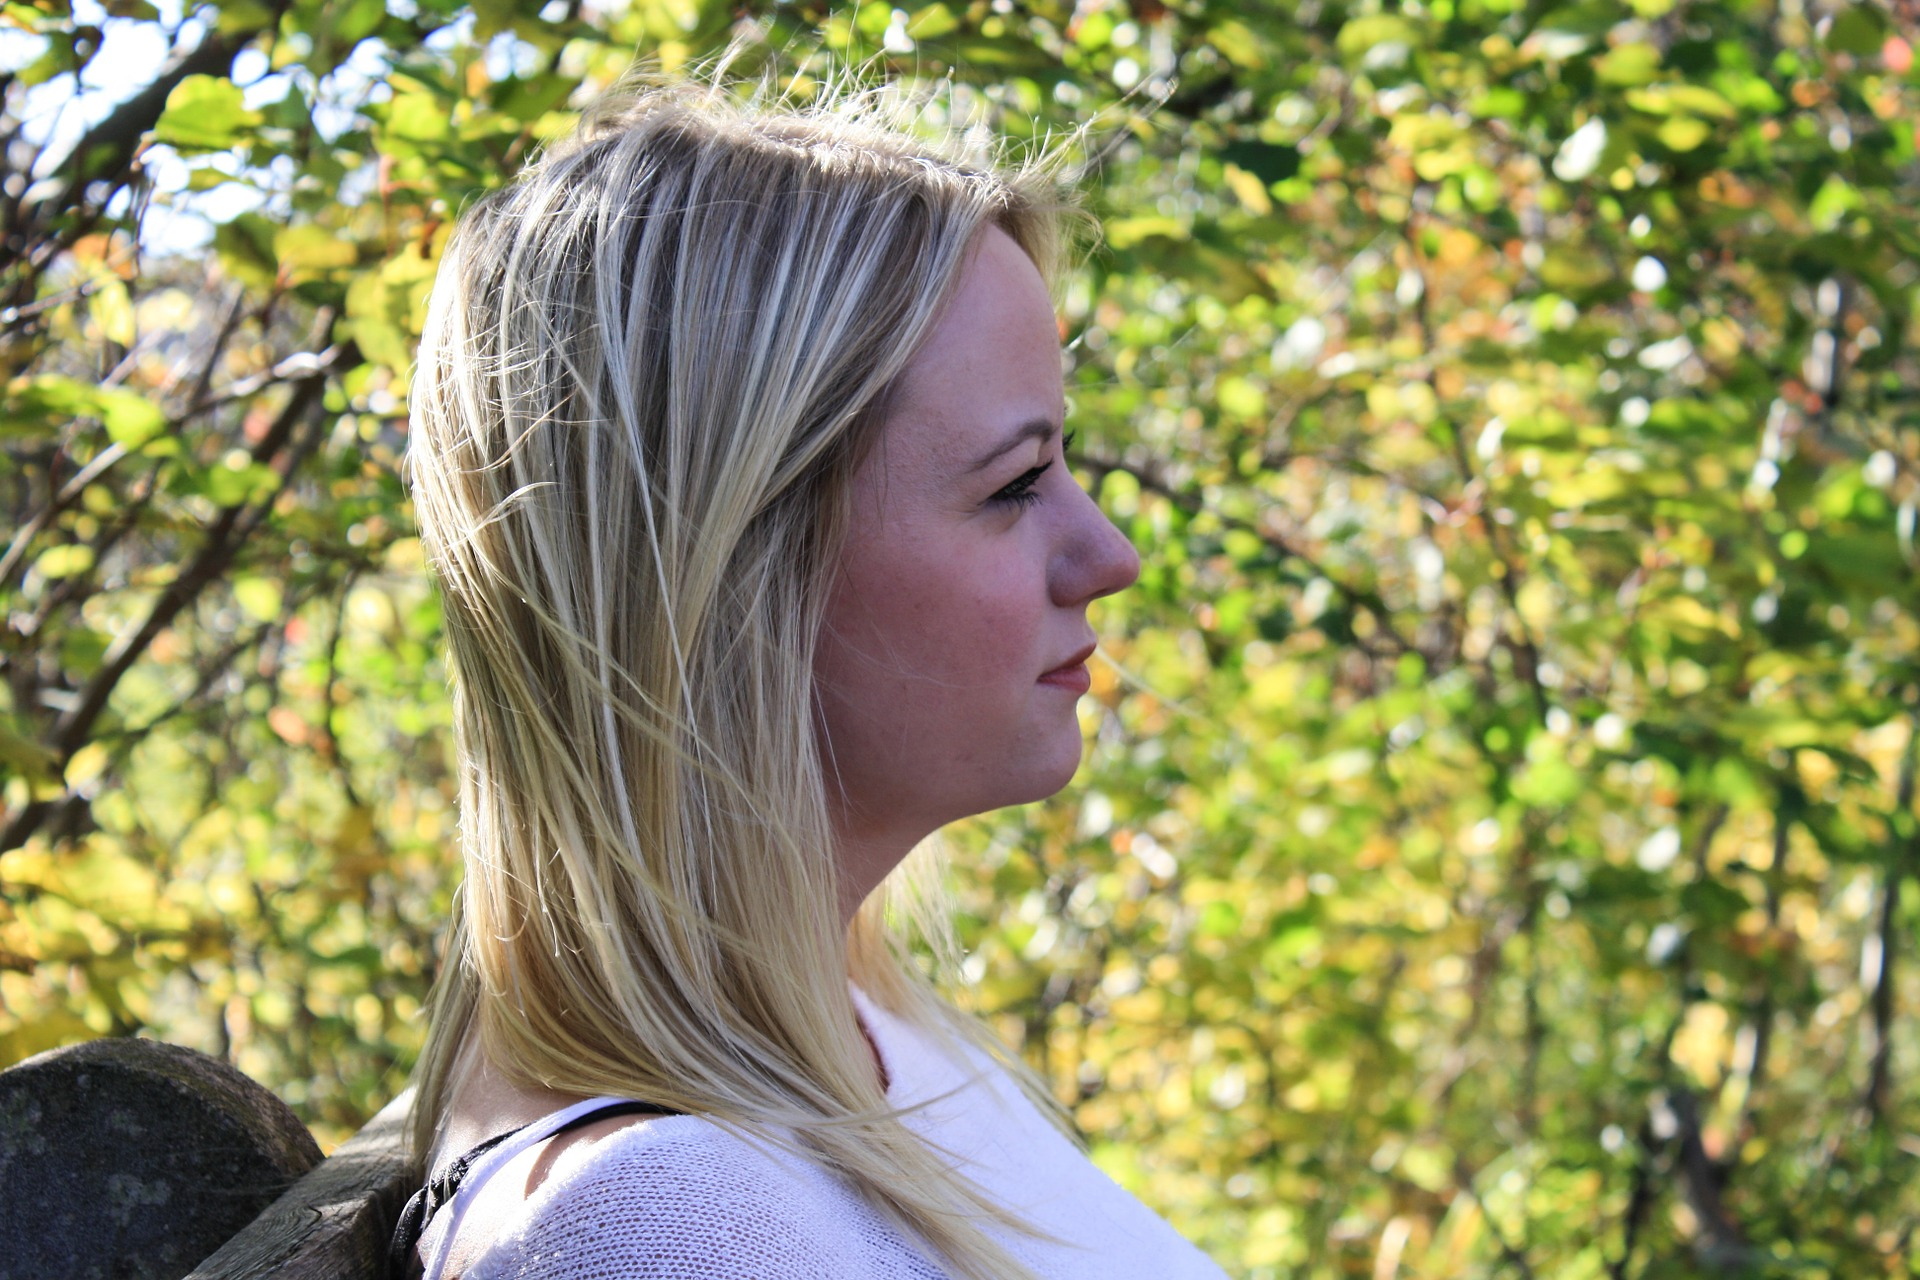 Side profile of blonde woman